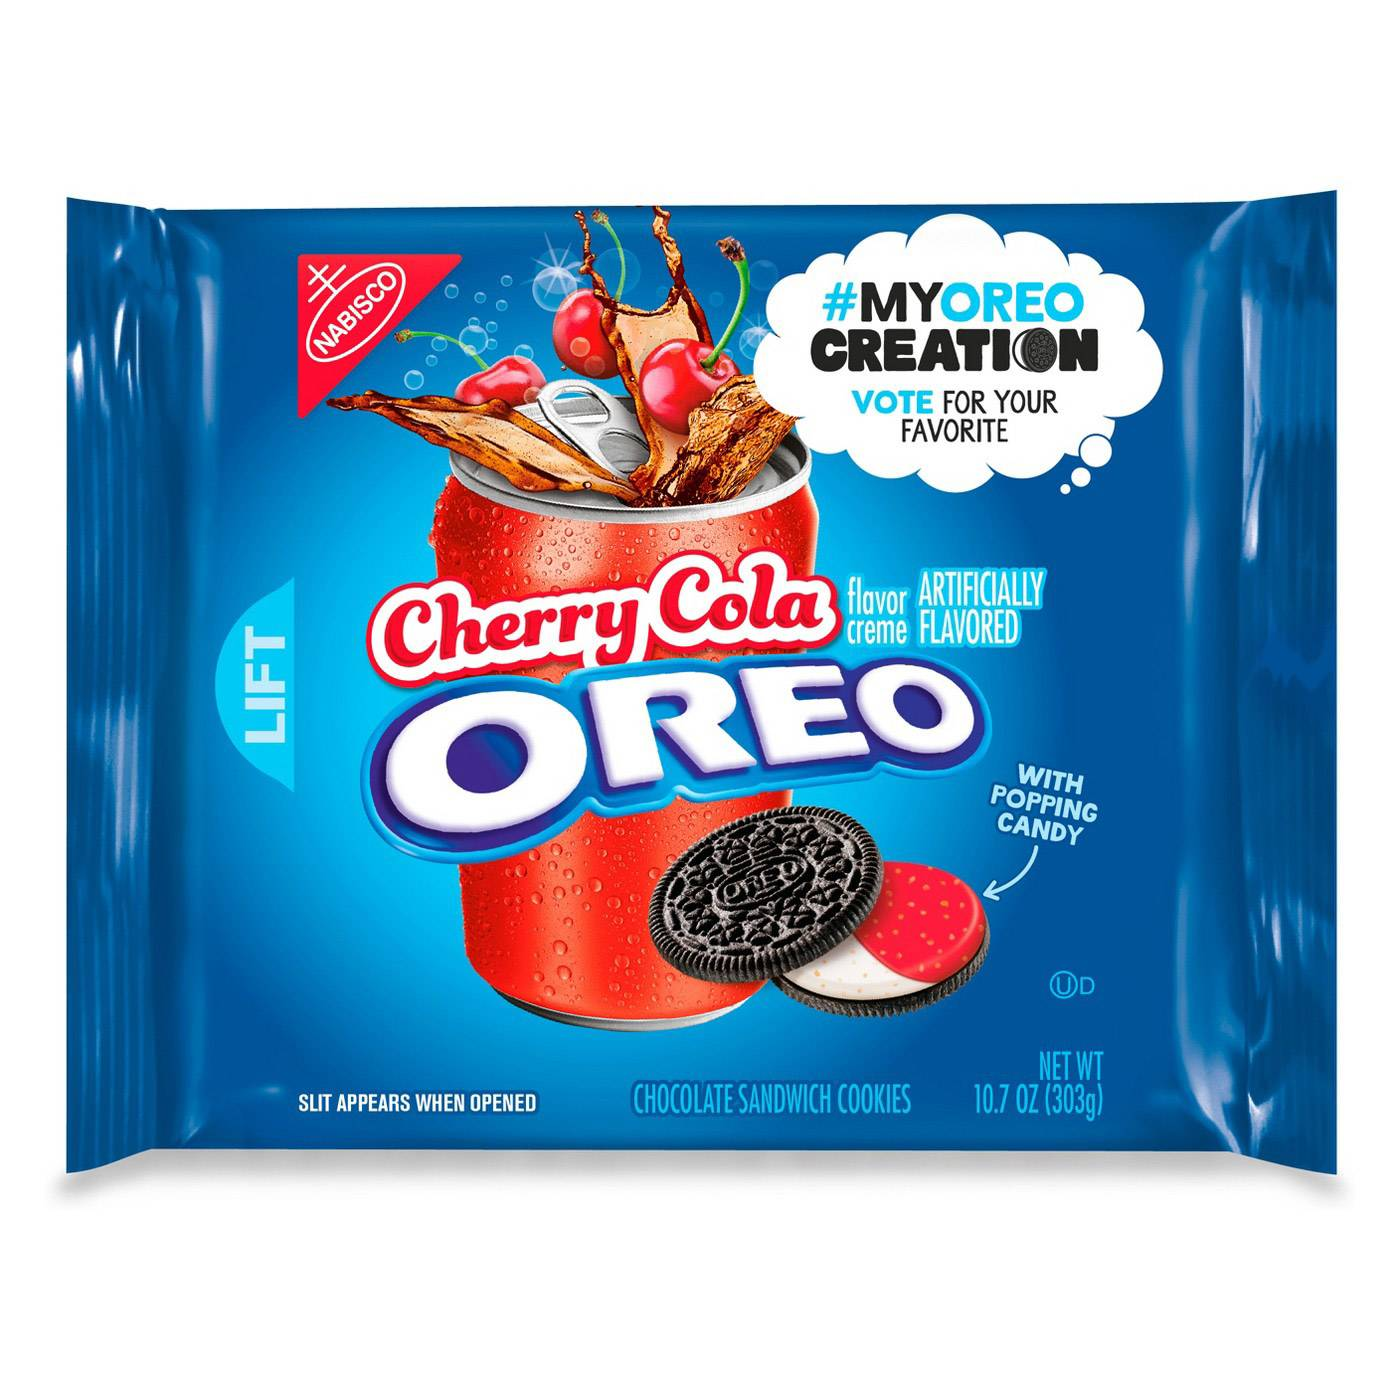 Oreo Announces the Winner of Their Flavor Contest